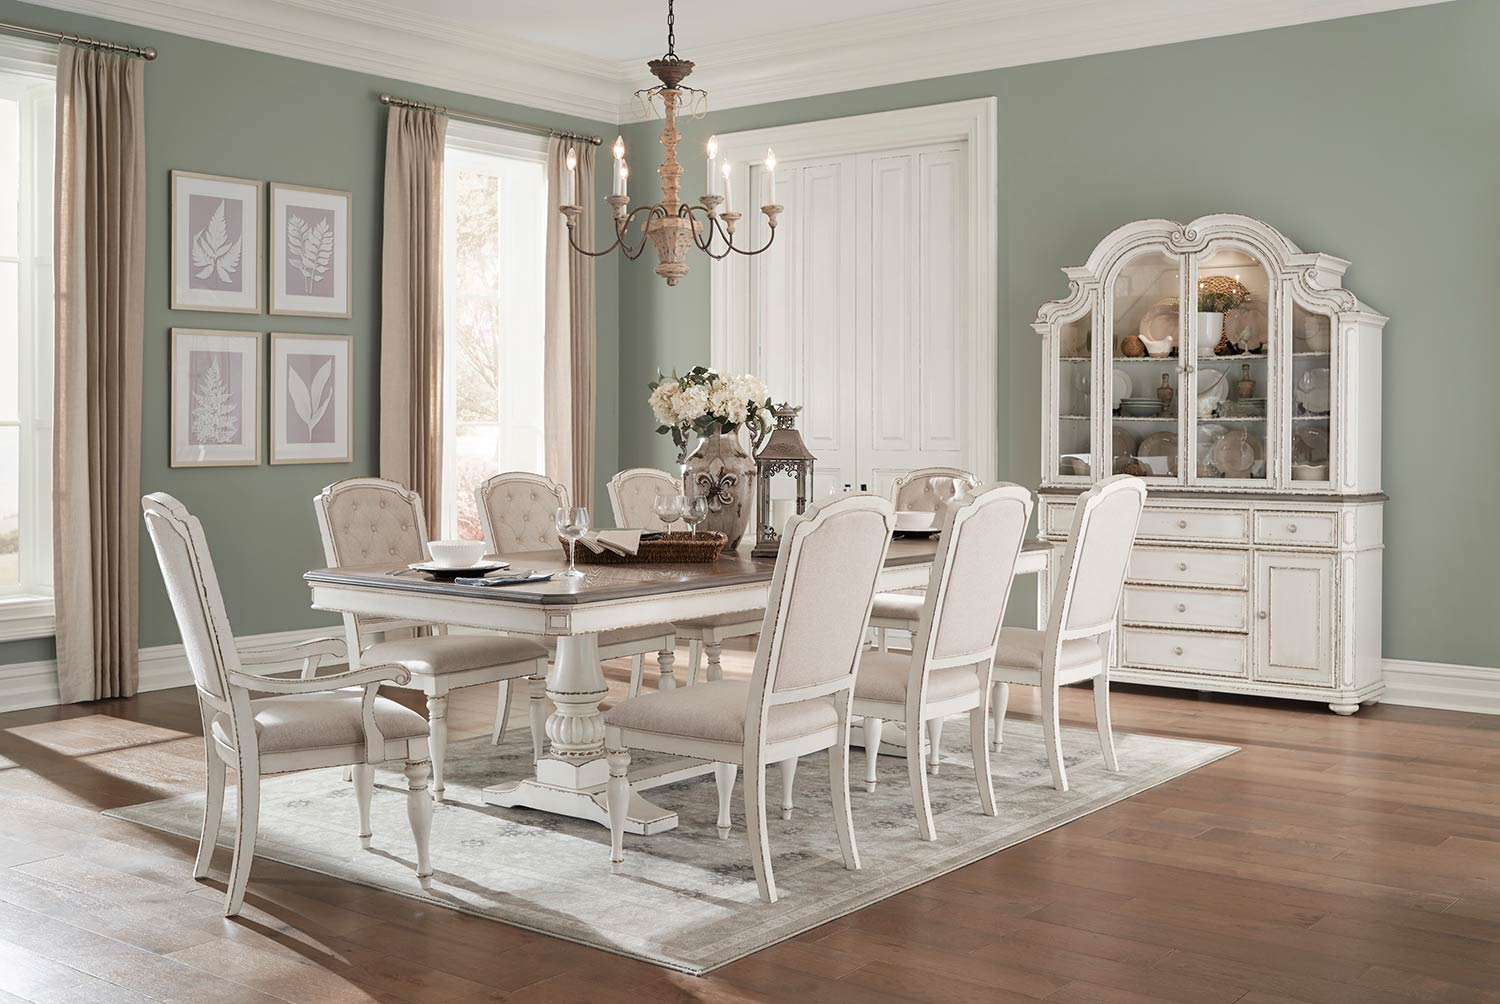 Homelegance Willowick Dining Set - Antique White